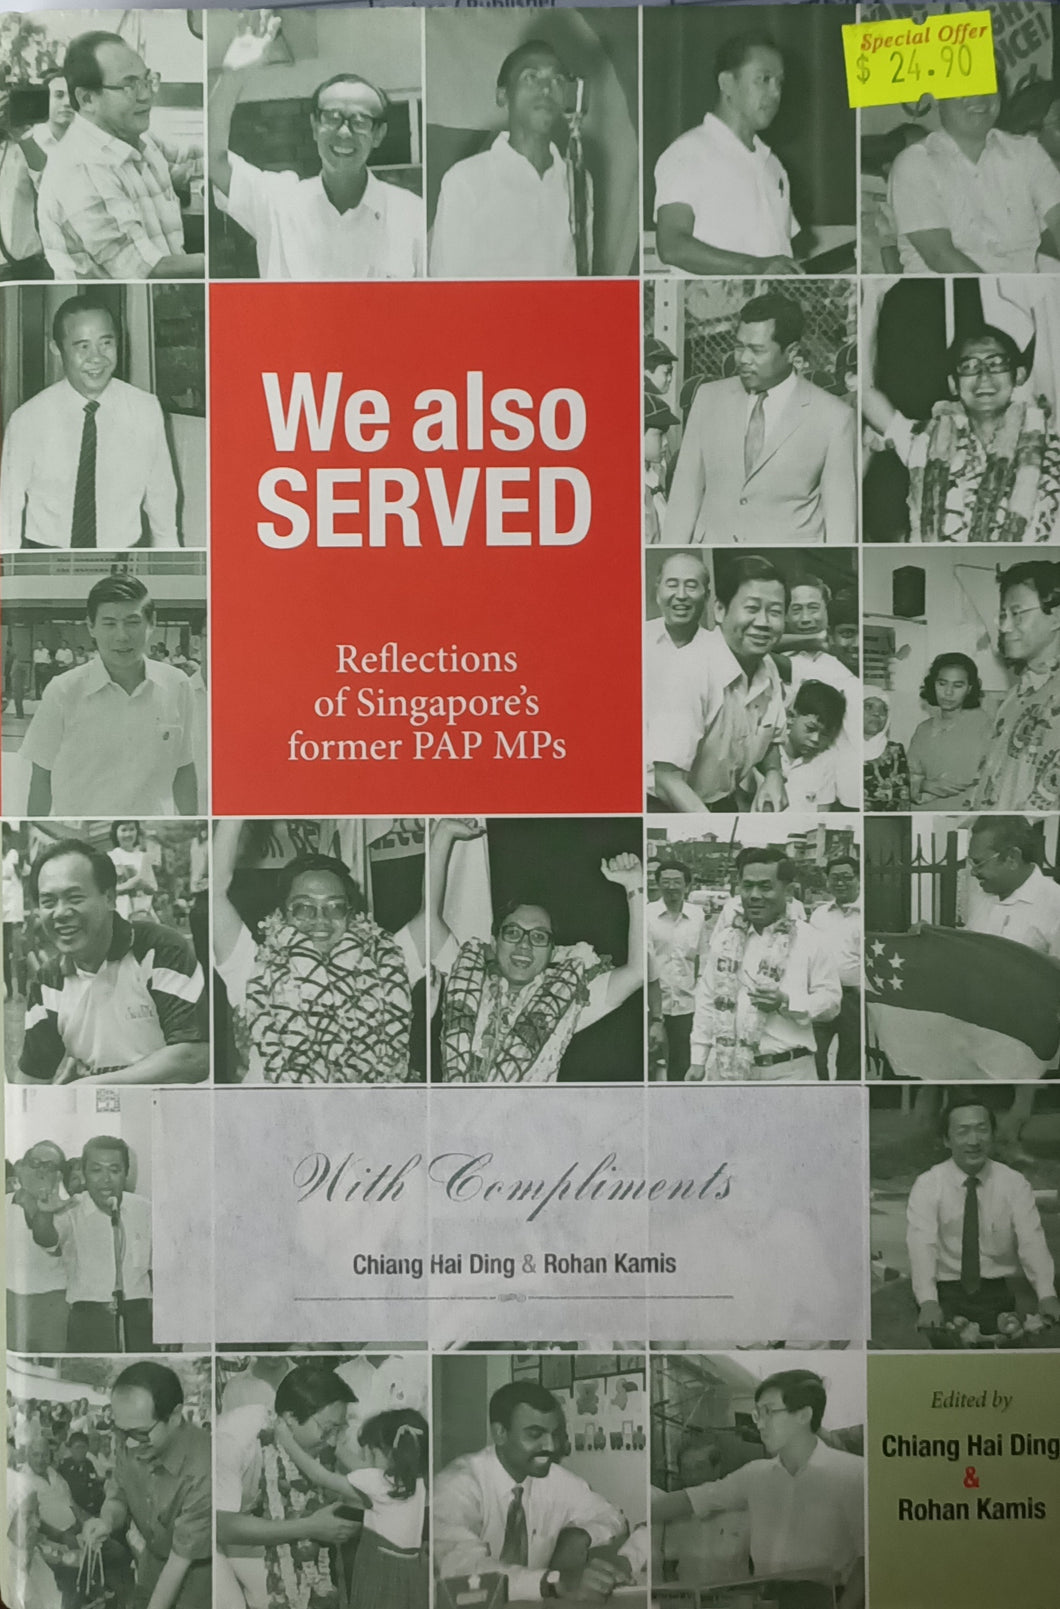 We Also Served: Reflection of Singapore's former PAP MPs - Chiang Hai Ding and Rohan Kamis